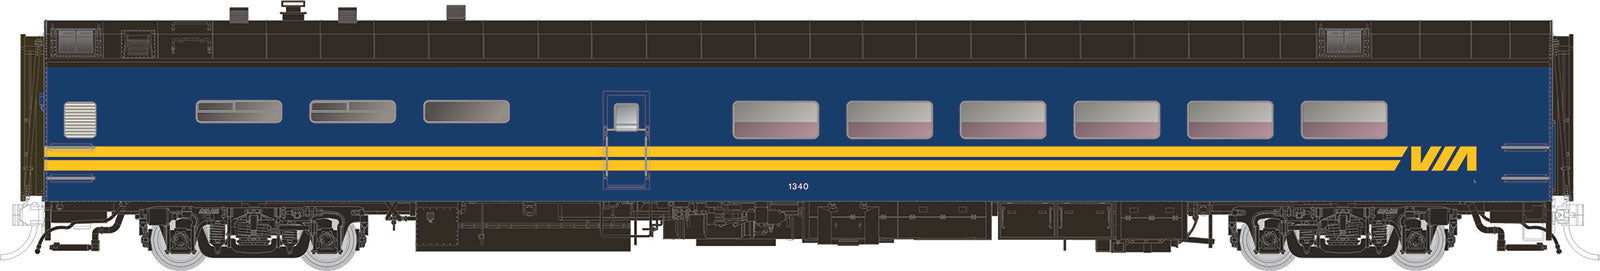 Rapido Trains  VIA Rail Canada Pullman-Standard Lightweight Dining Car